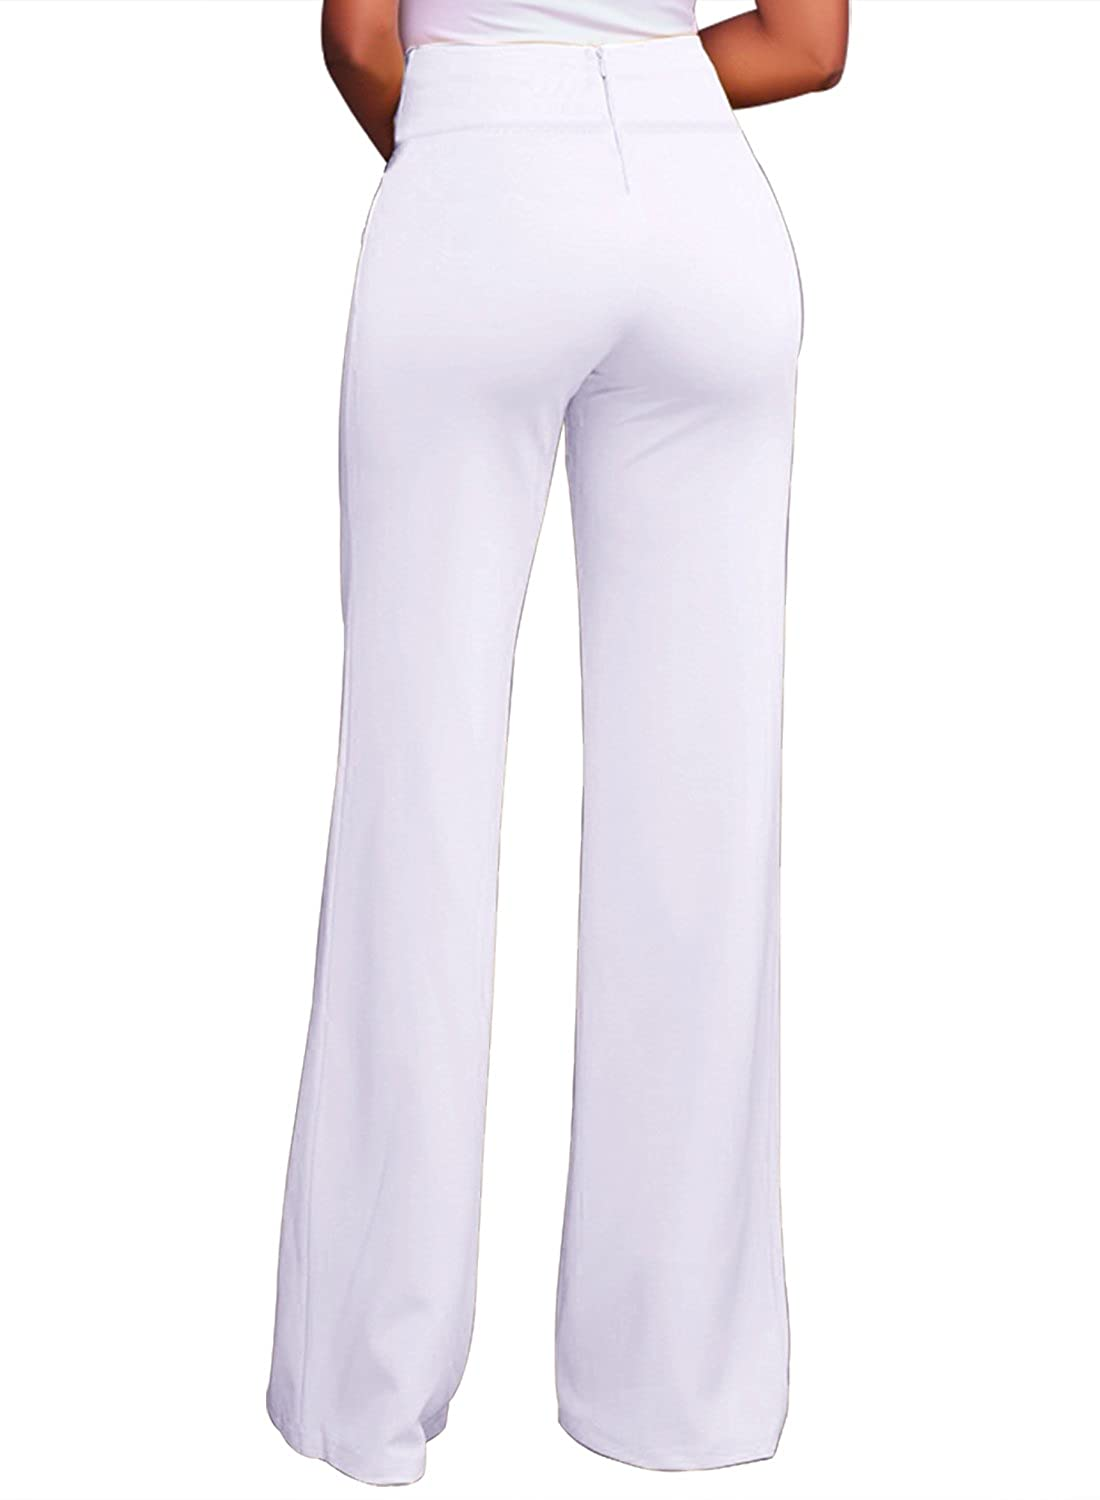 2f126ad0e010f LOSRLY Women Solid Color High Waist Zipper Wide Leg Palazzo Long Pants Plus  Size - White -  Amazon.co.uk  Clothing